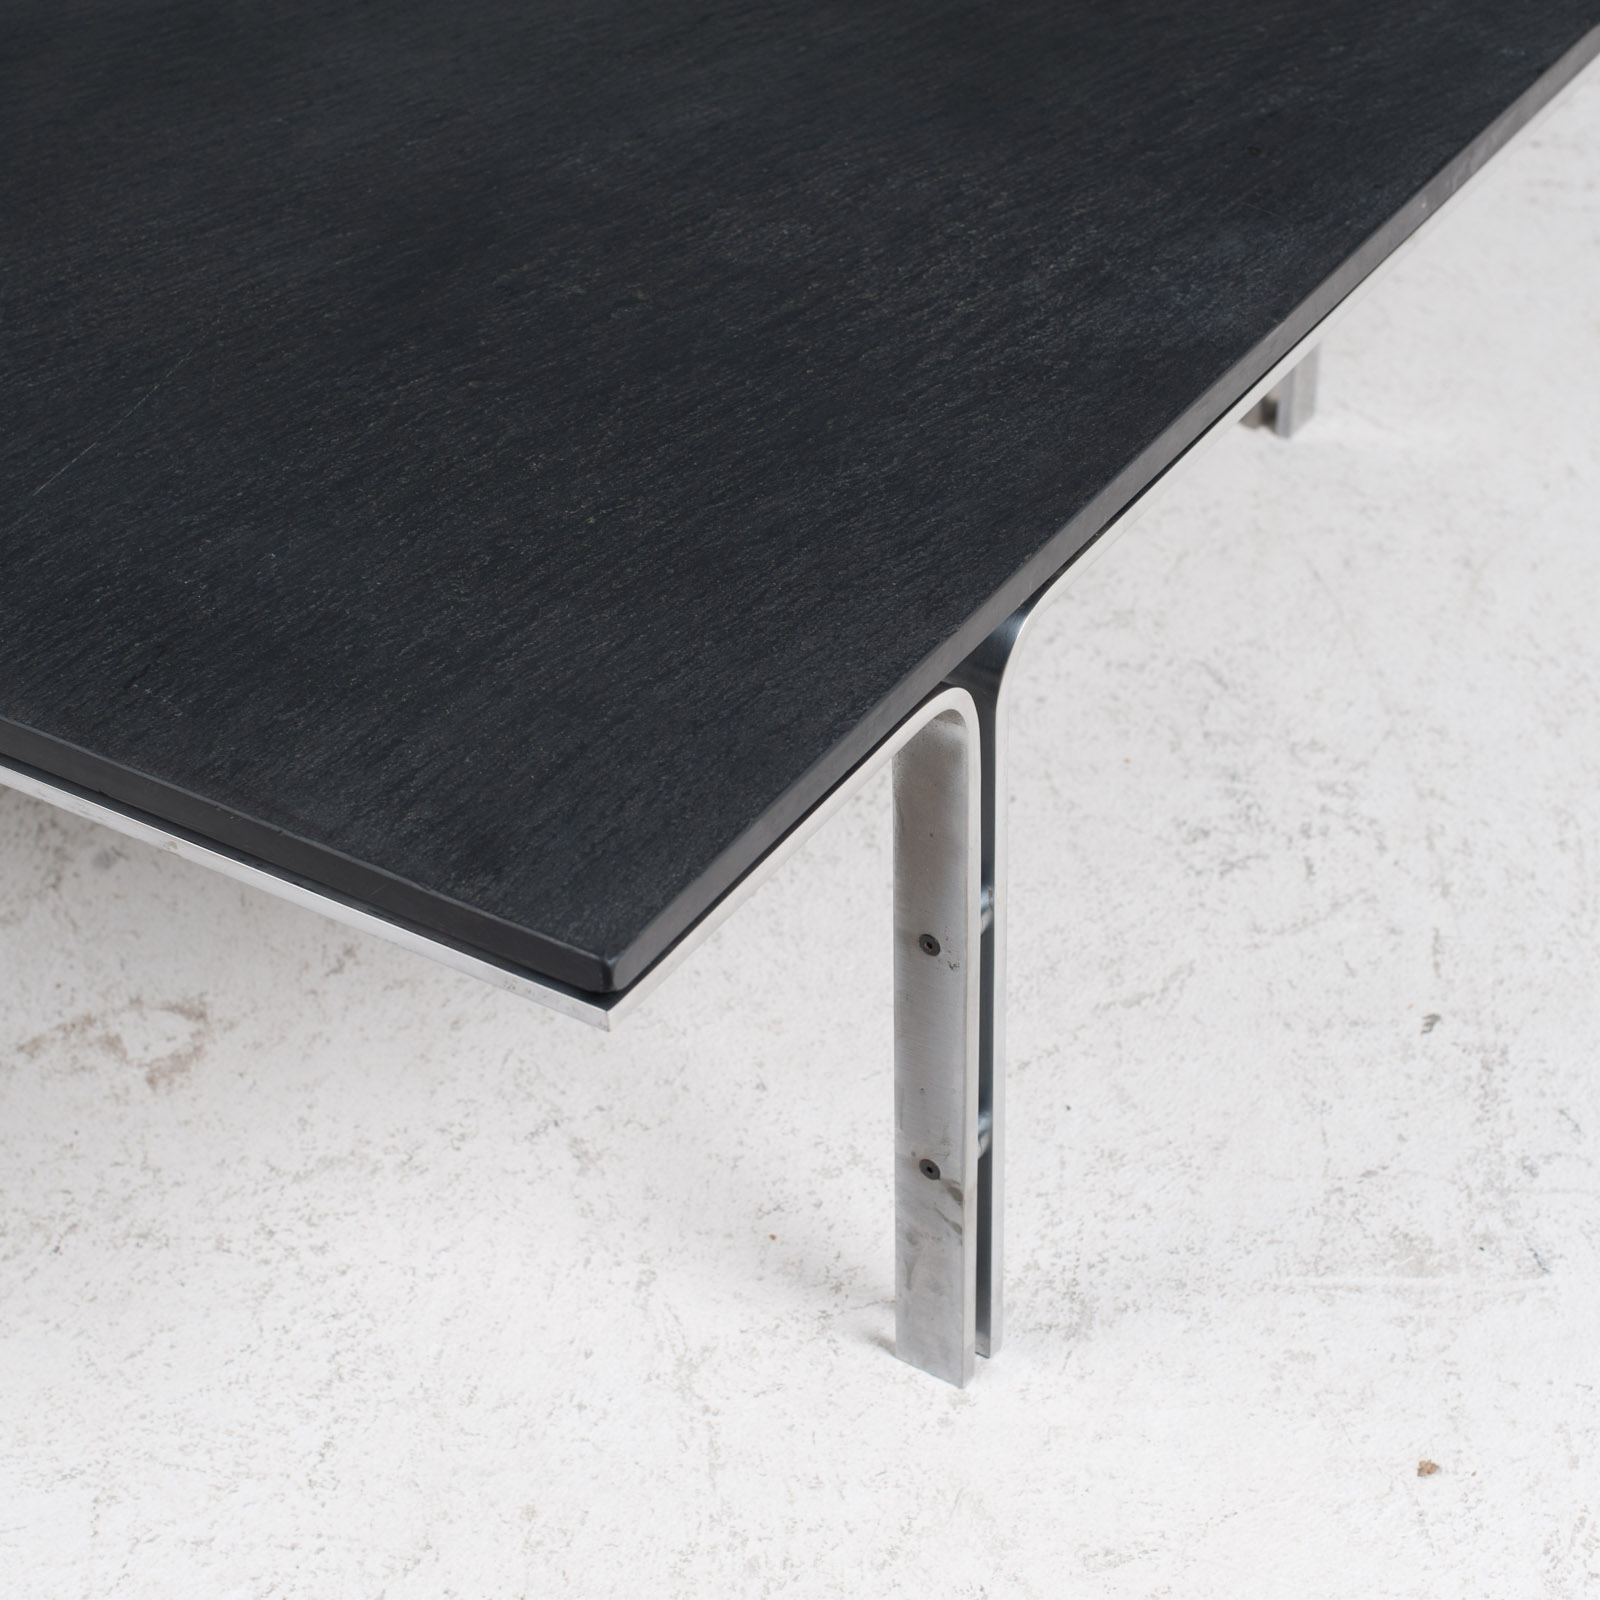 Coffee Table By Hank Kwint For Metaform In Slate And Chrome 1970s Netherlands 04